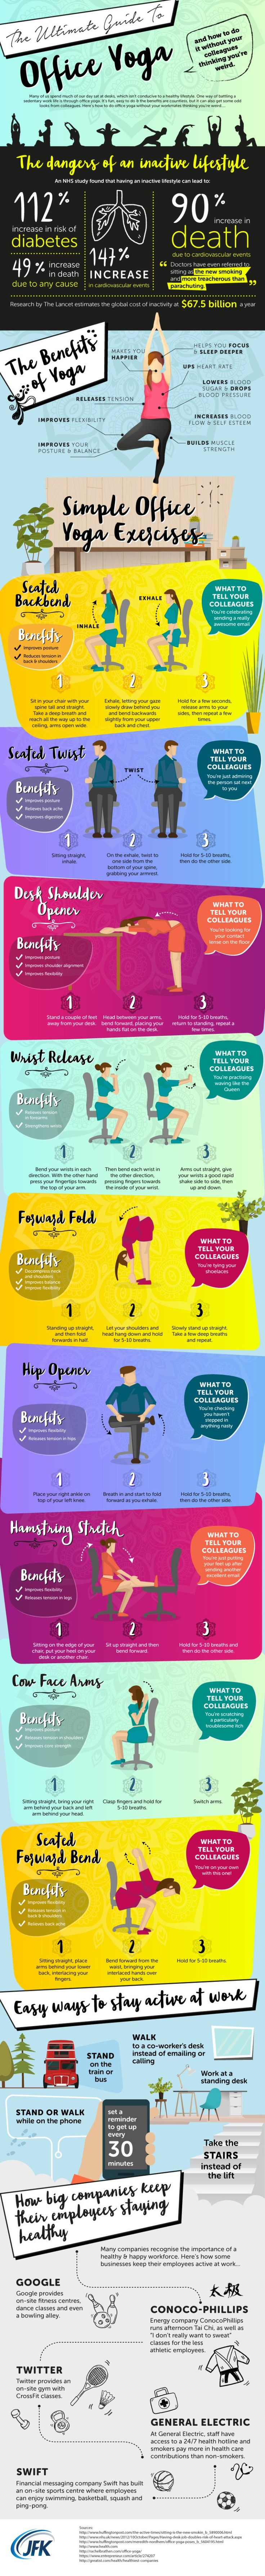 Ultimate guide to office yoga infographic